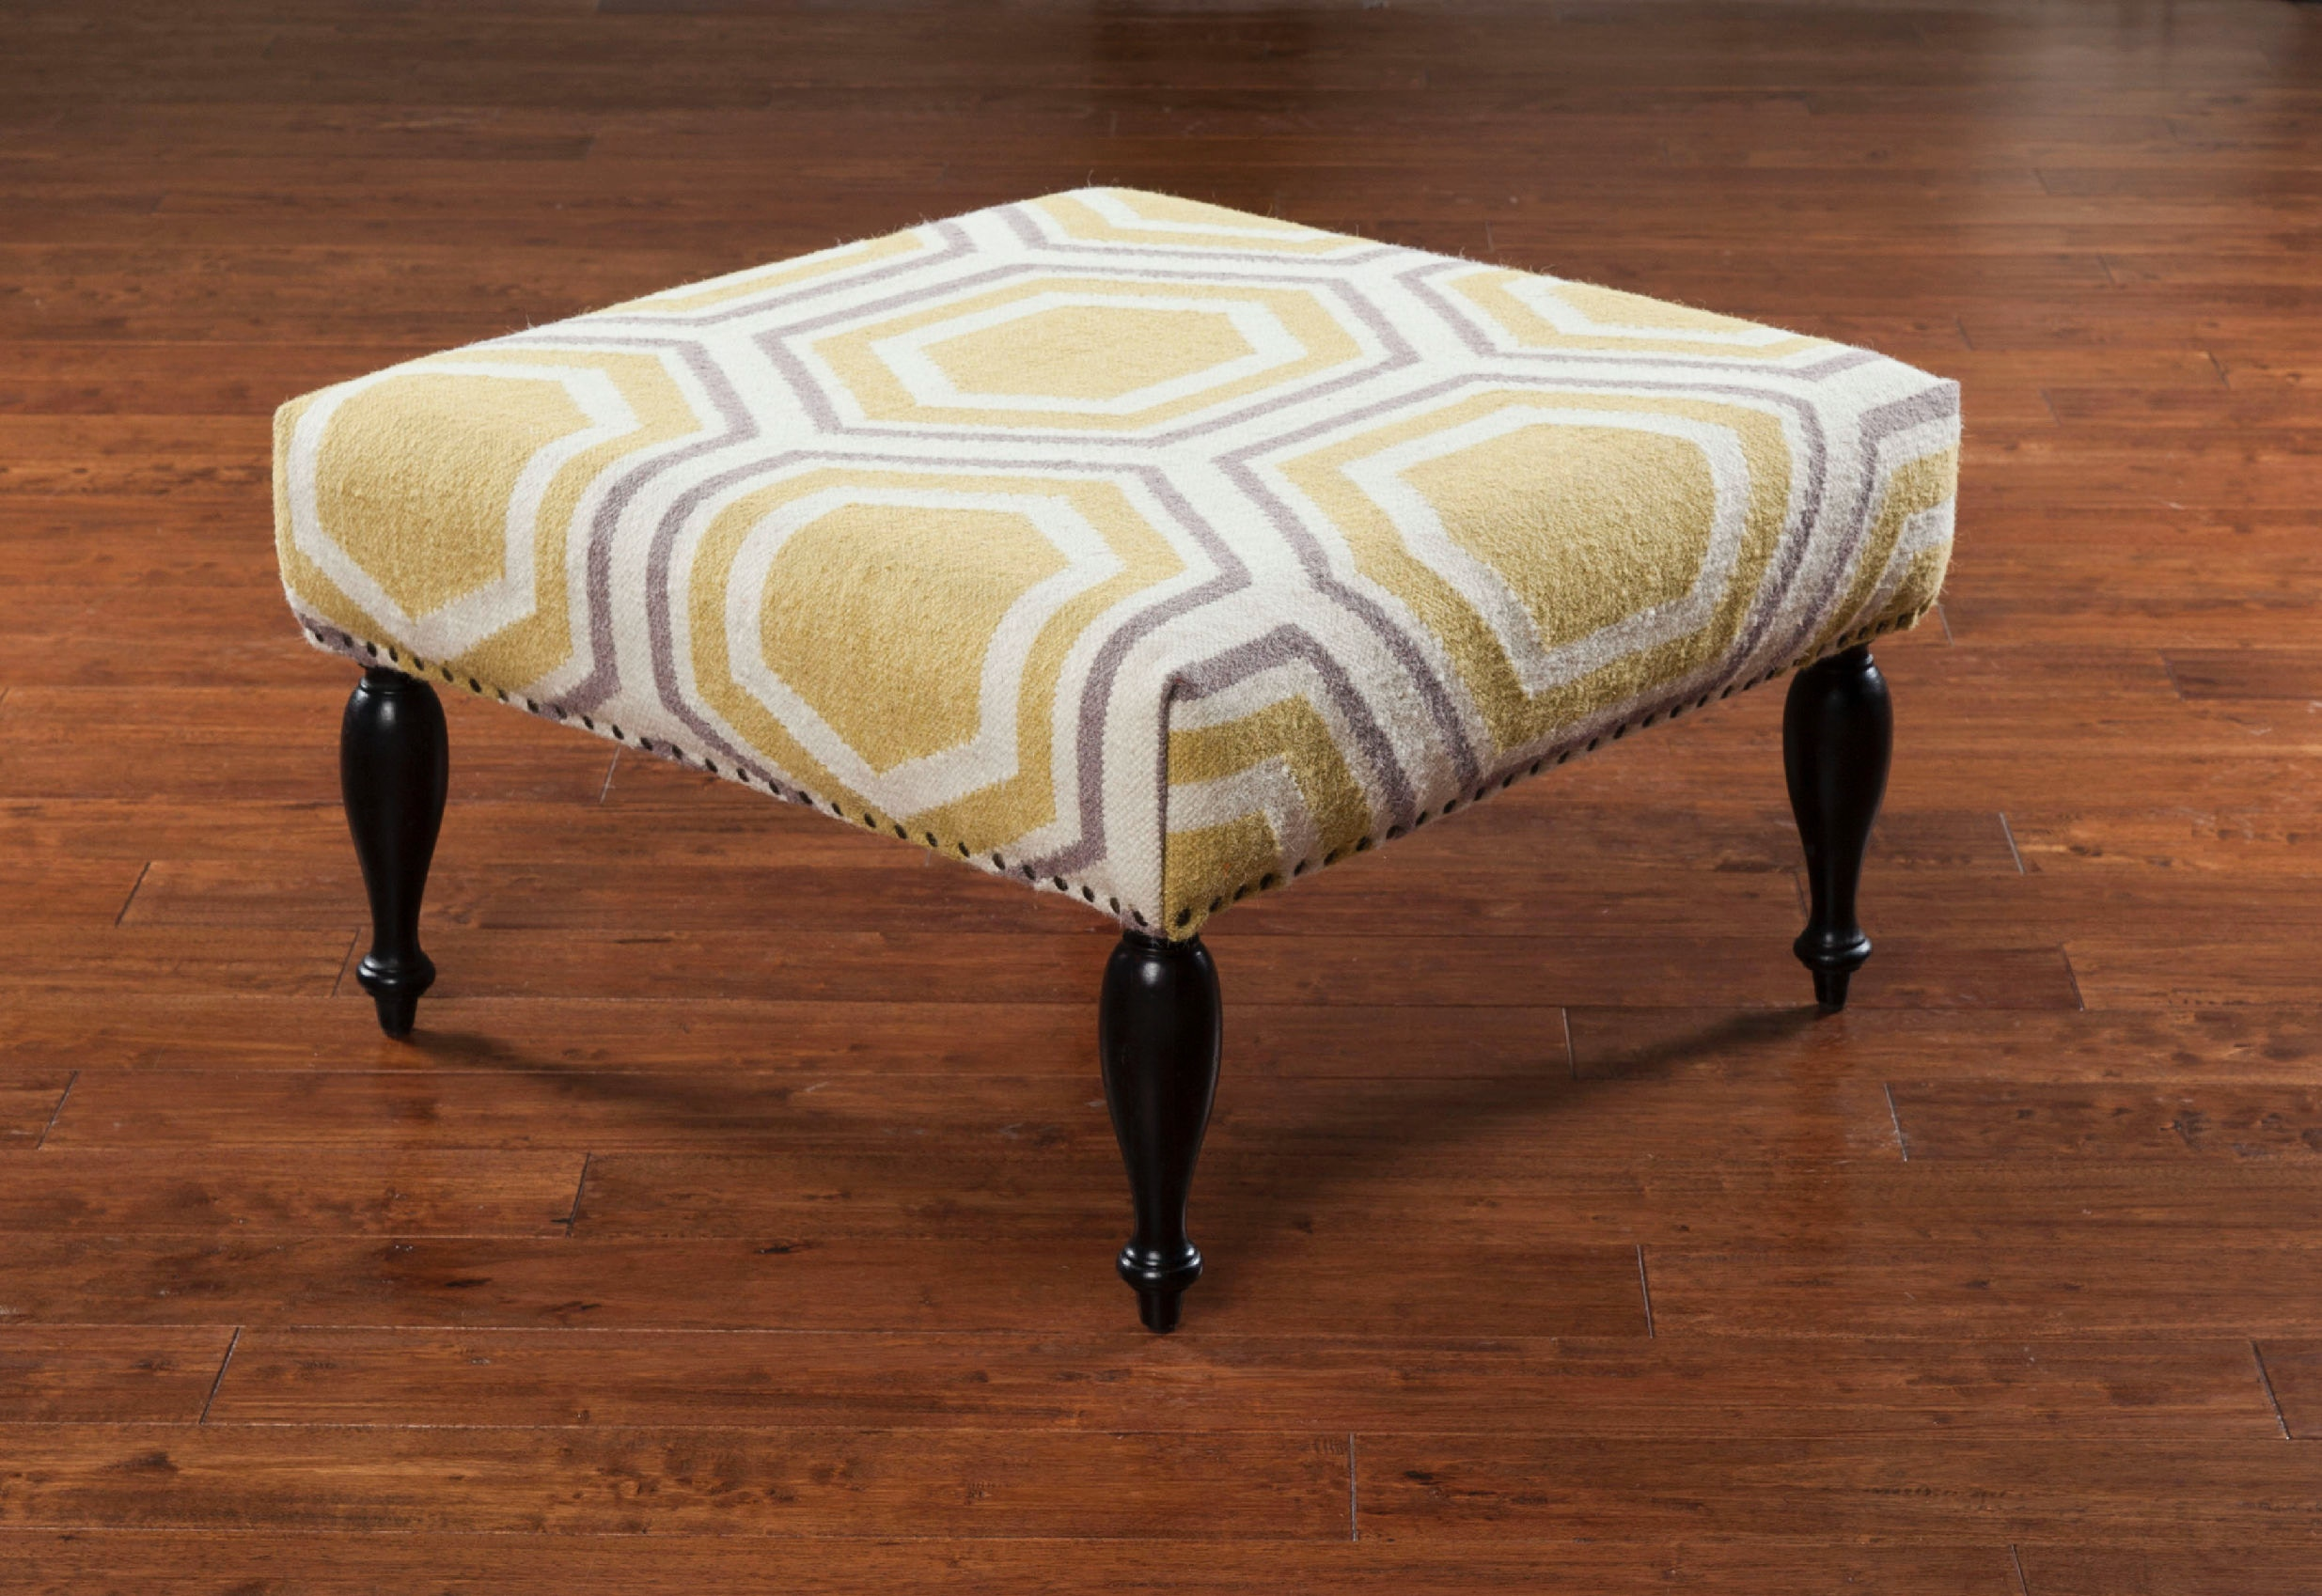 Surya Furniture 32 X 32 X 18 Ottoman FL1020 808045